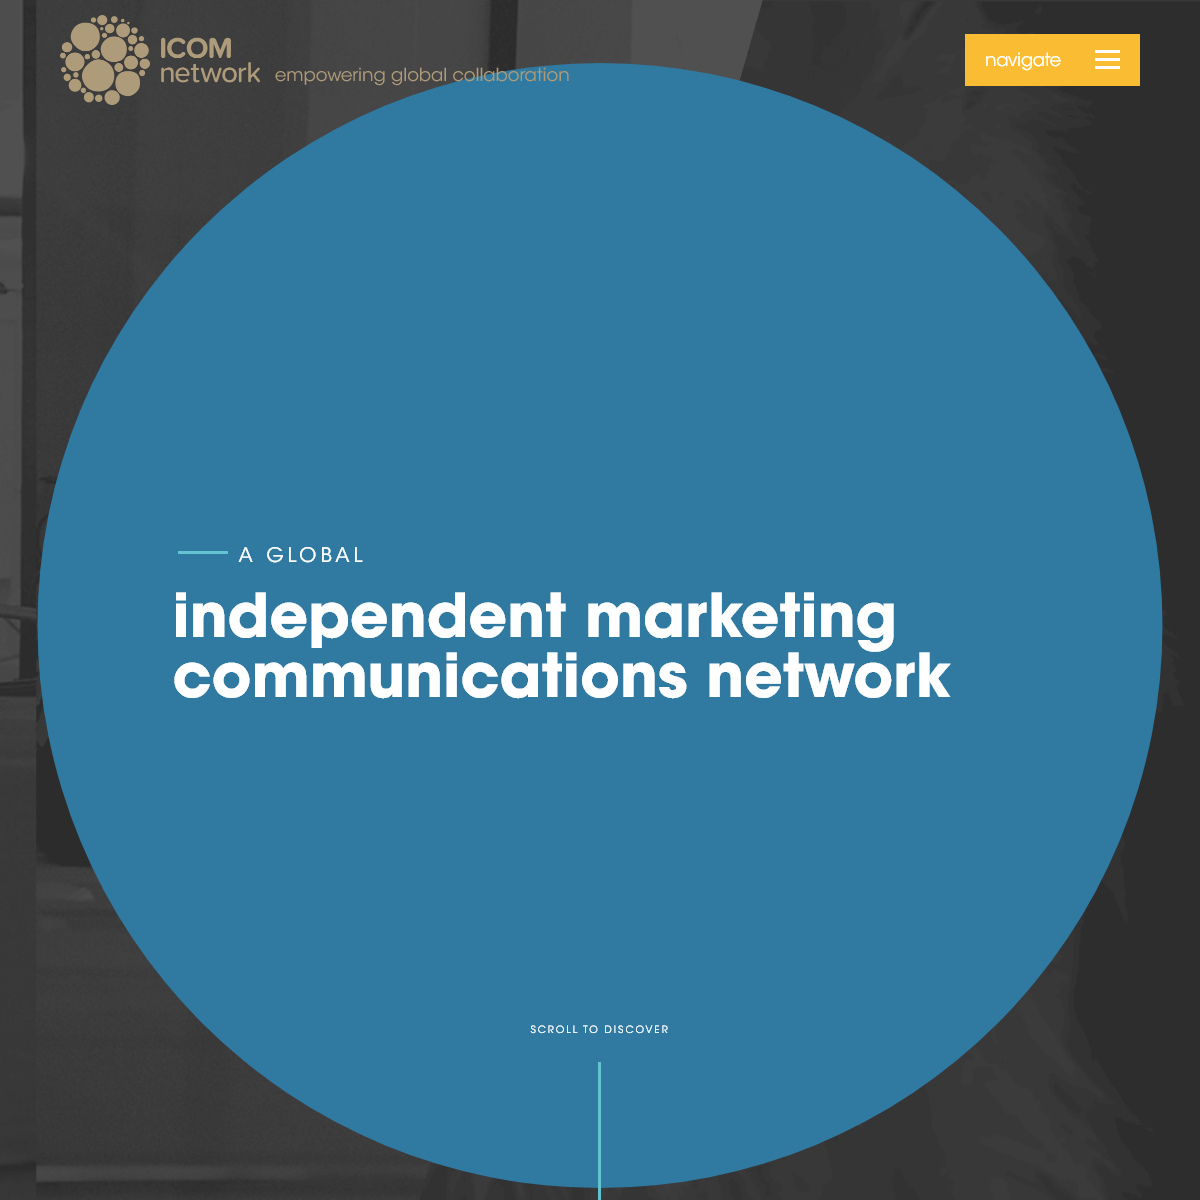 ICOM Network - A Global Independent Marketing Communications Network